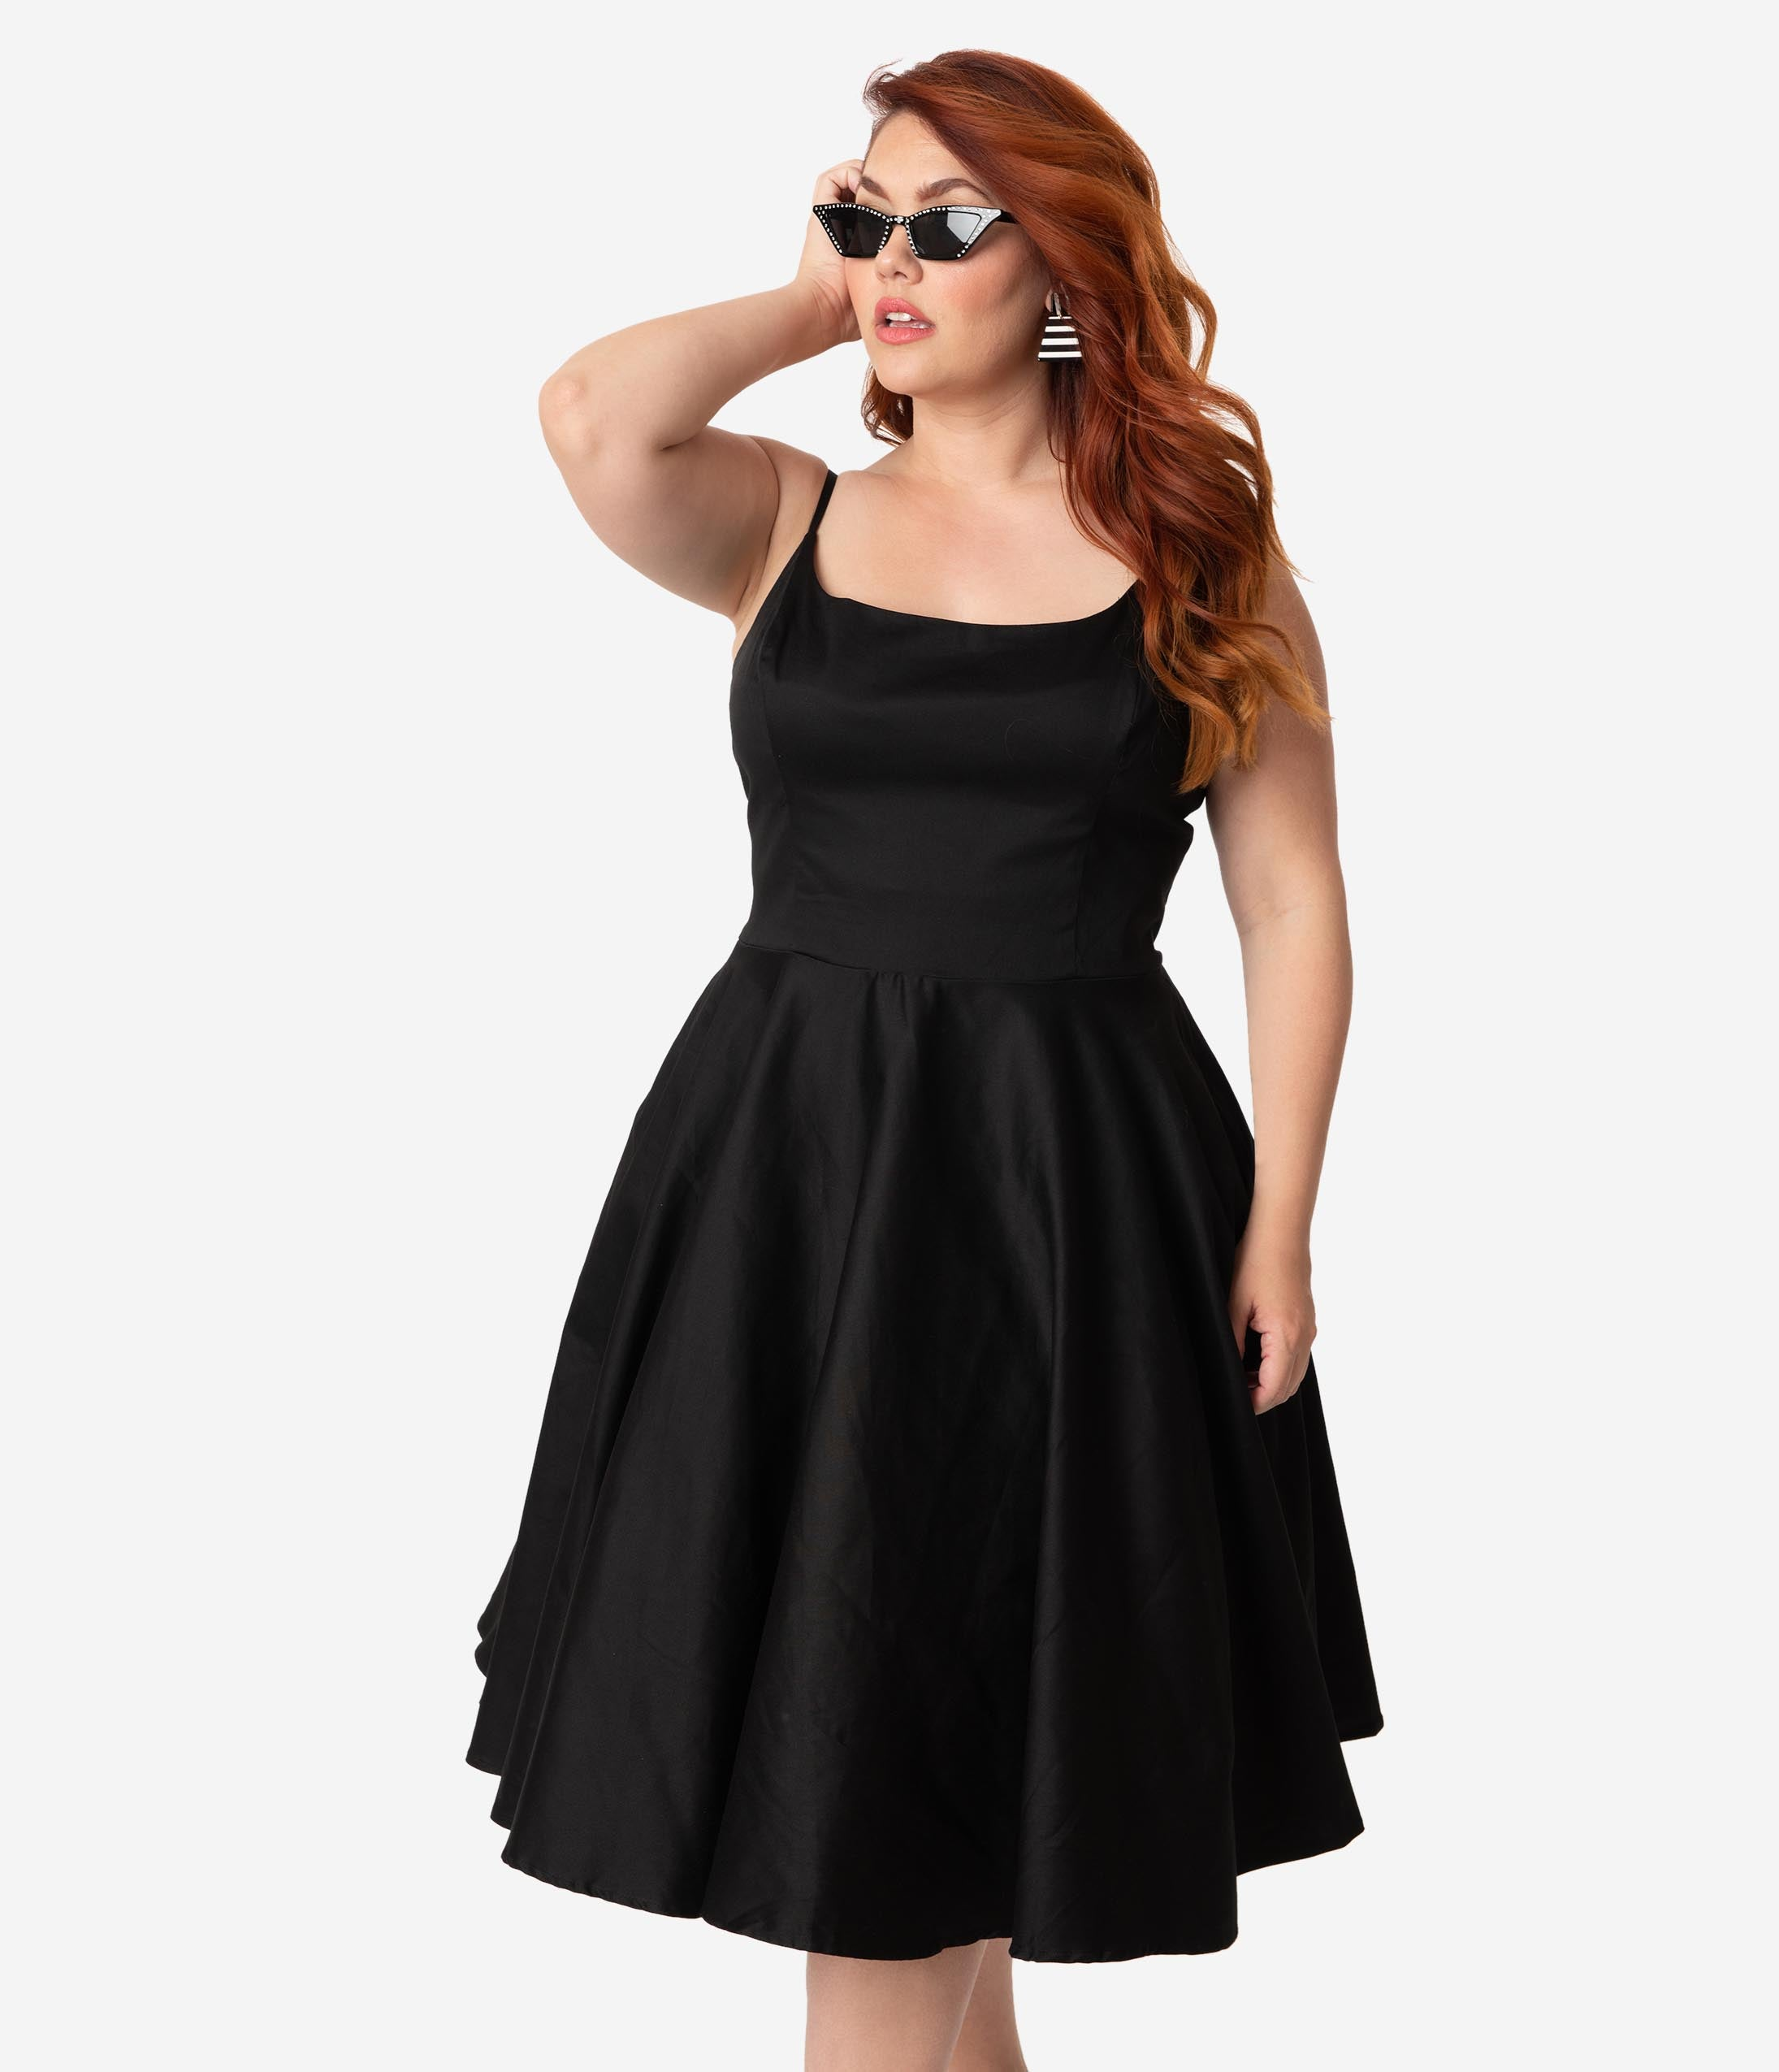 1950s Dresses, 50s Dresses | 1950s Style Dresses Plus Size 1950S Style Black Sleeveless Cotton Peggy Swing Dress $88.00 AT vintagedancer.com